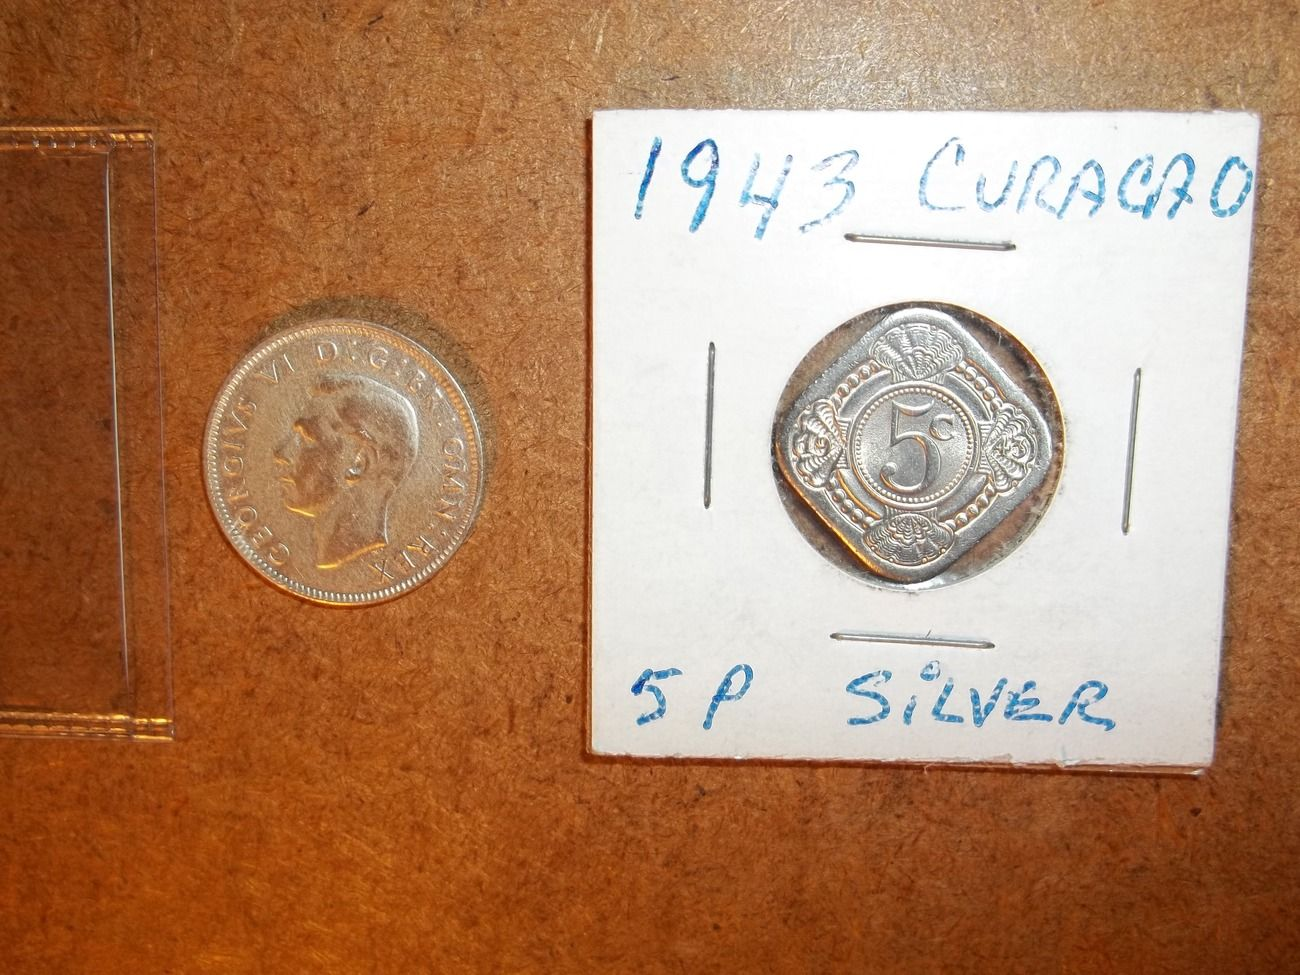 1942 Silver Schilling From Great Britain And 1943 Curacao 5 Cent